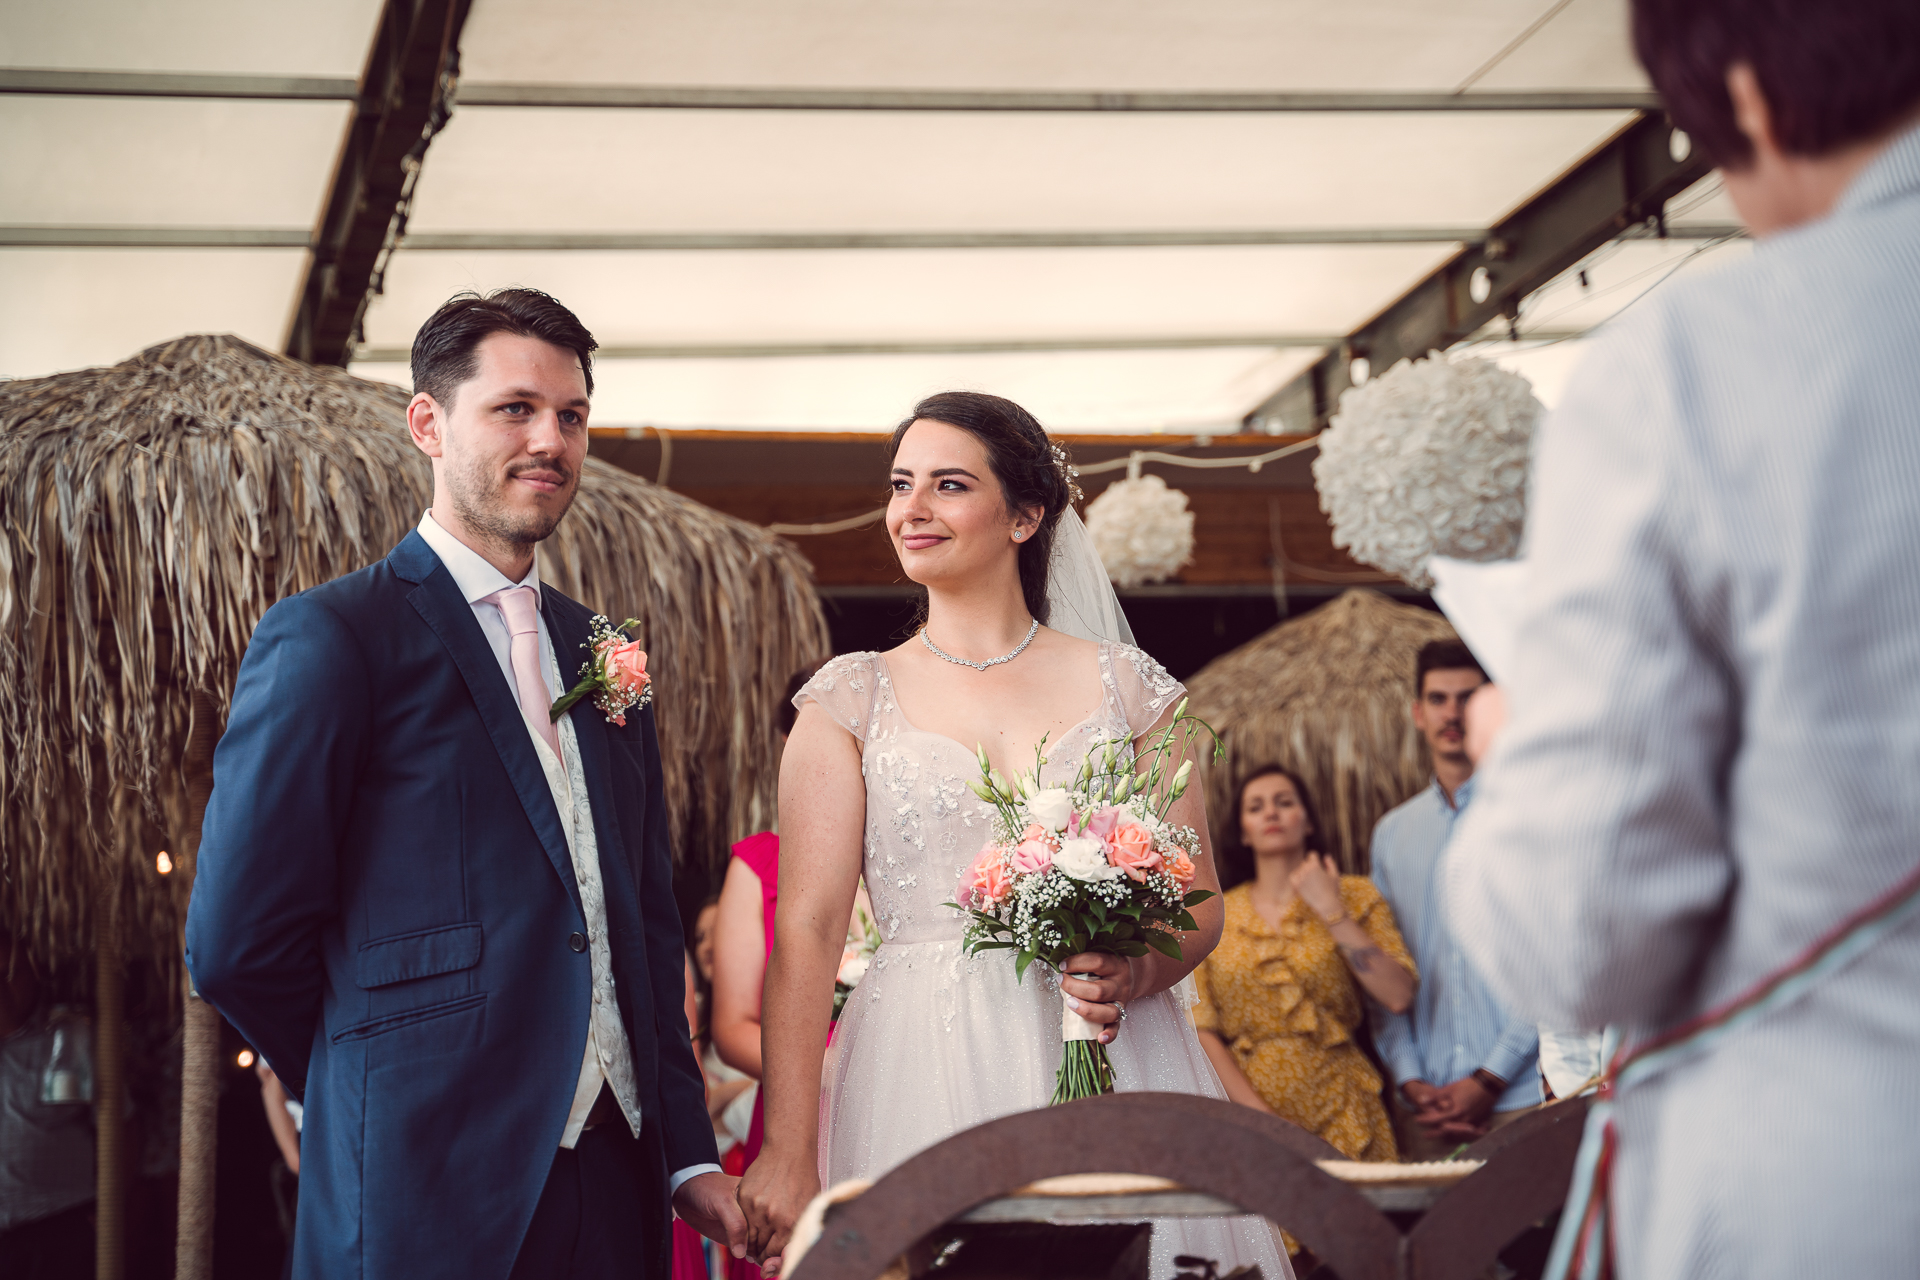 Cozy Bar, Sofia BG Wedding Ceremony Photographer | The bride clasps the grooms hand and looks at him with loving pride